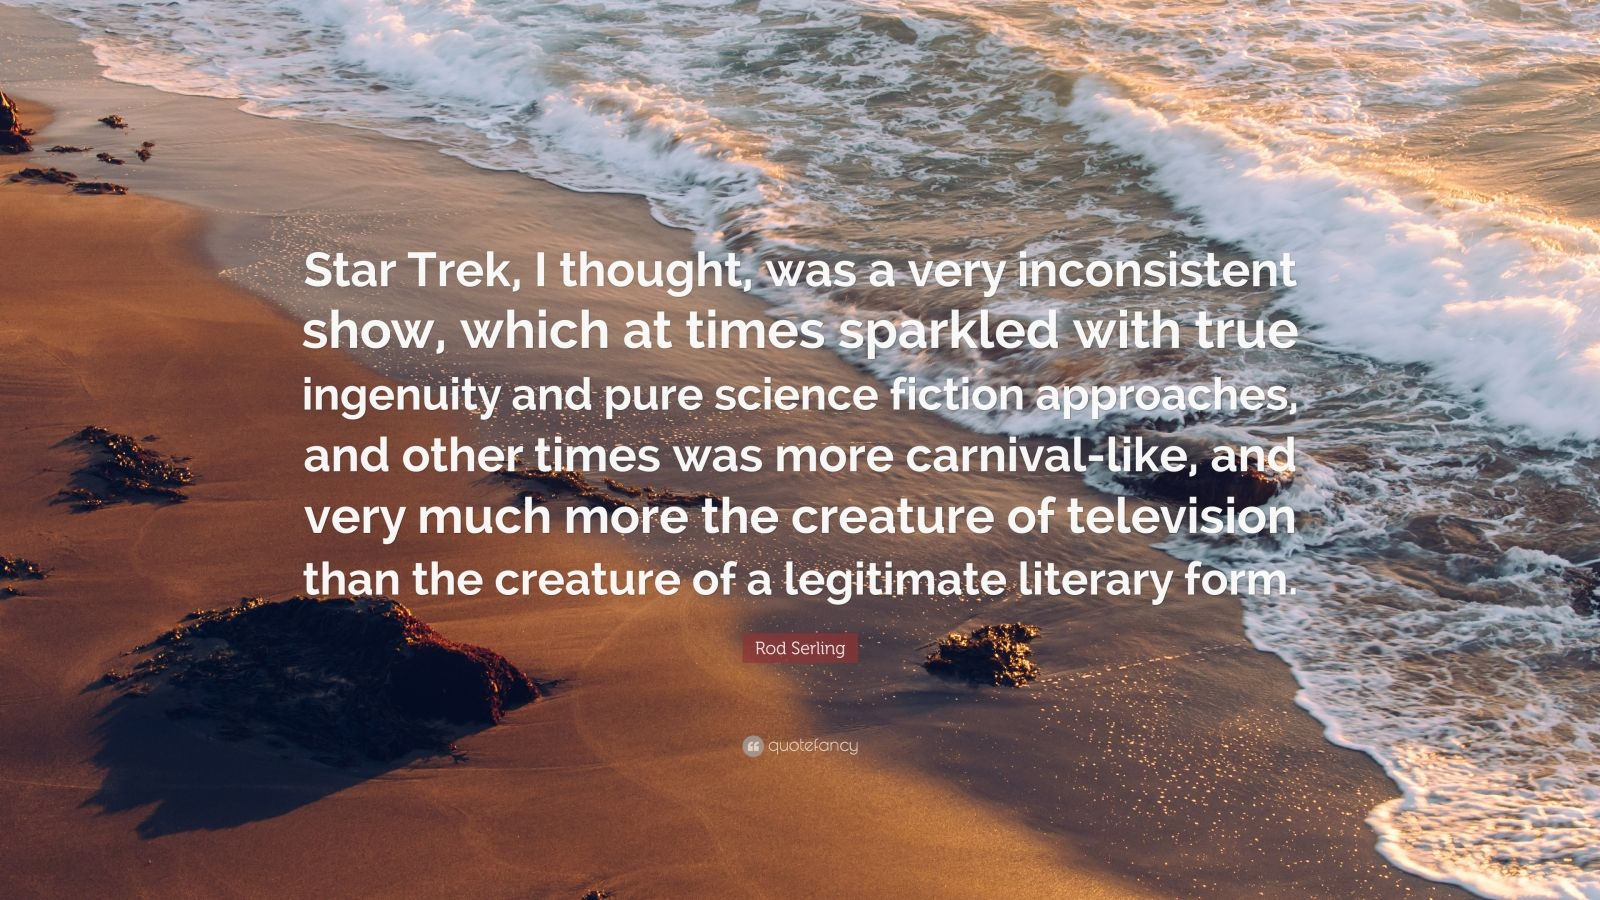 """Rod Serling Quote: """"Star Trek, I thought, was a very inconsistent show, which at times sparkled with true ingenuity and pure science fiction approaches, and other times was more carnival-like, and very much more the creature of television than the creature of a legitimate literary form."""""""